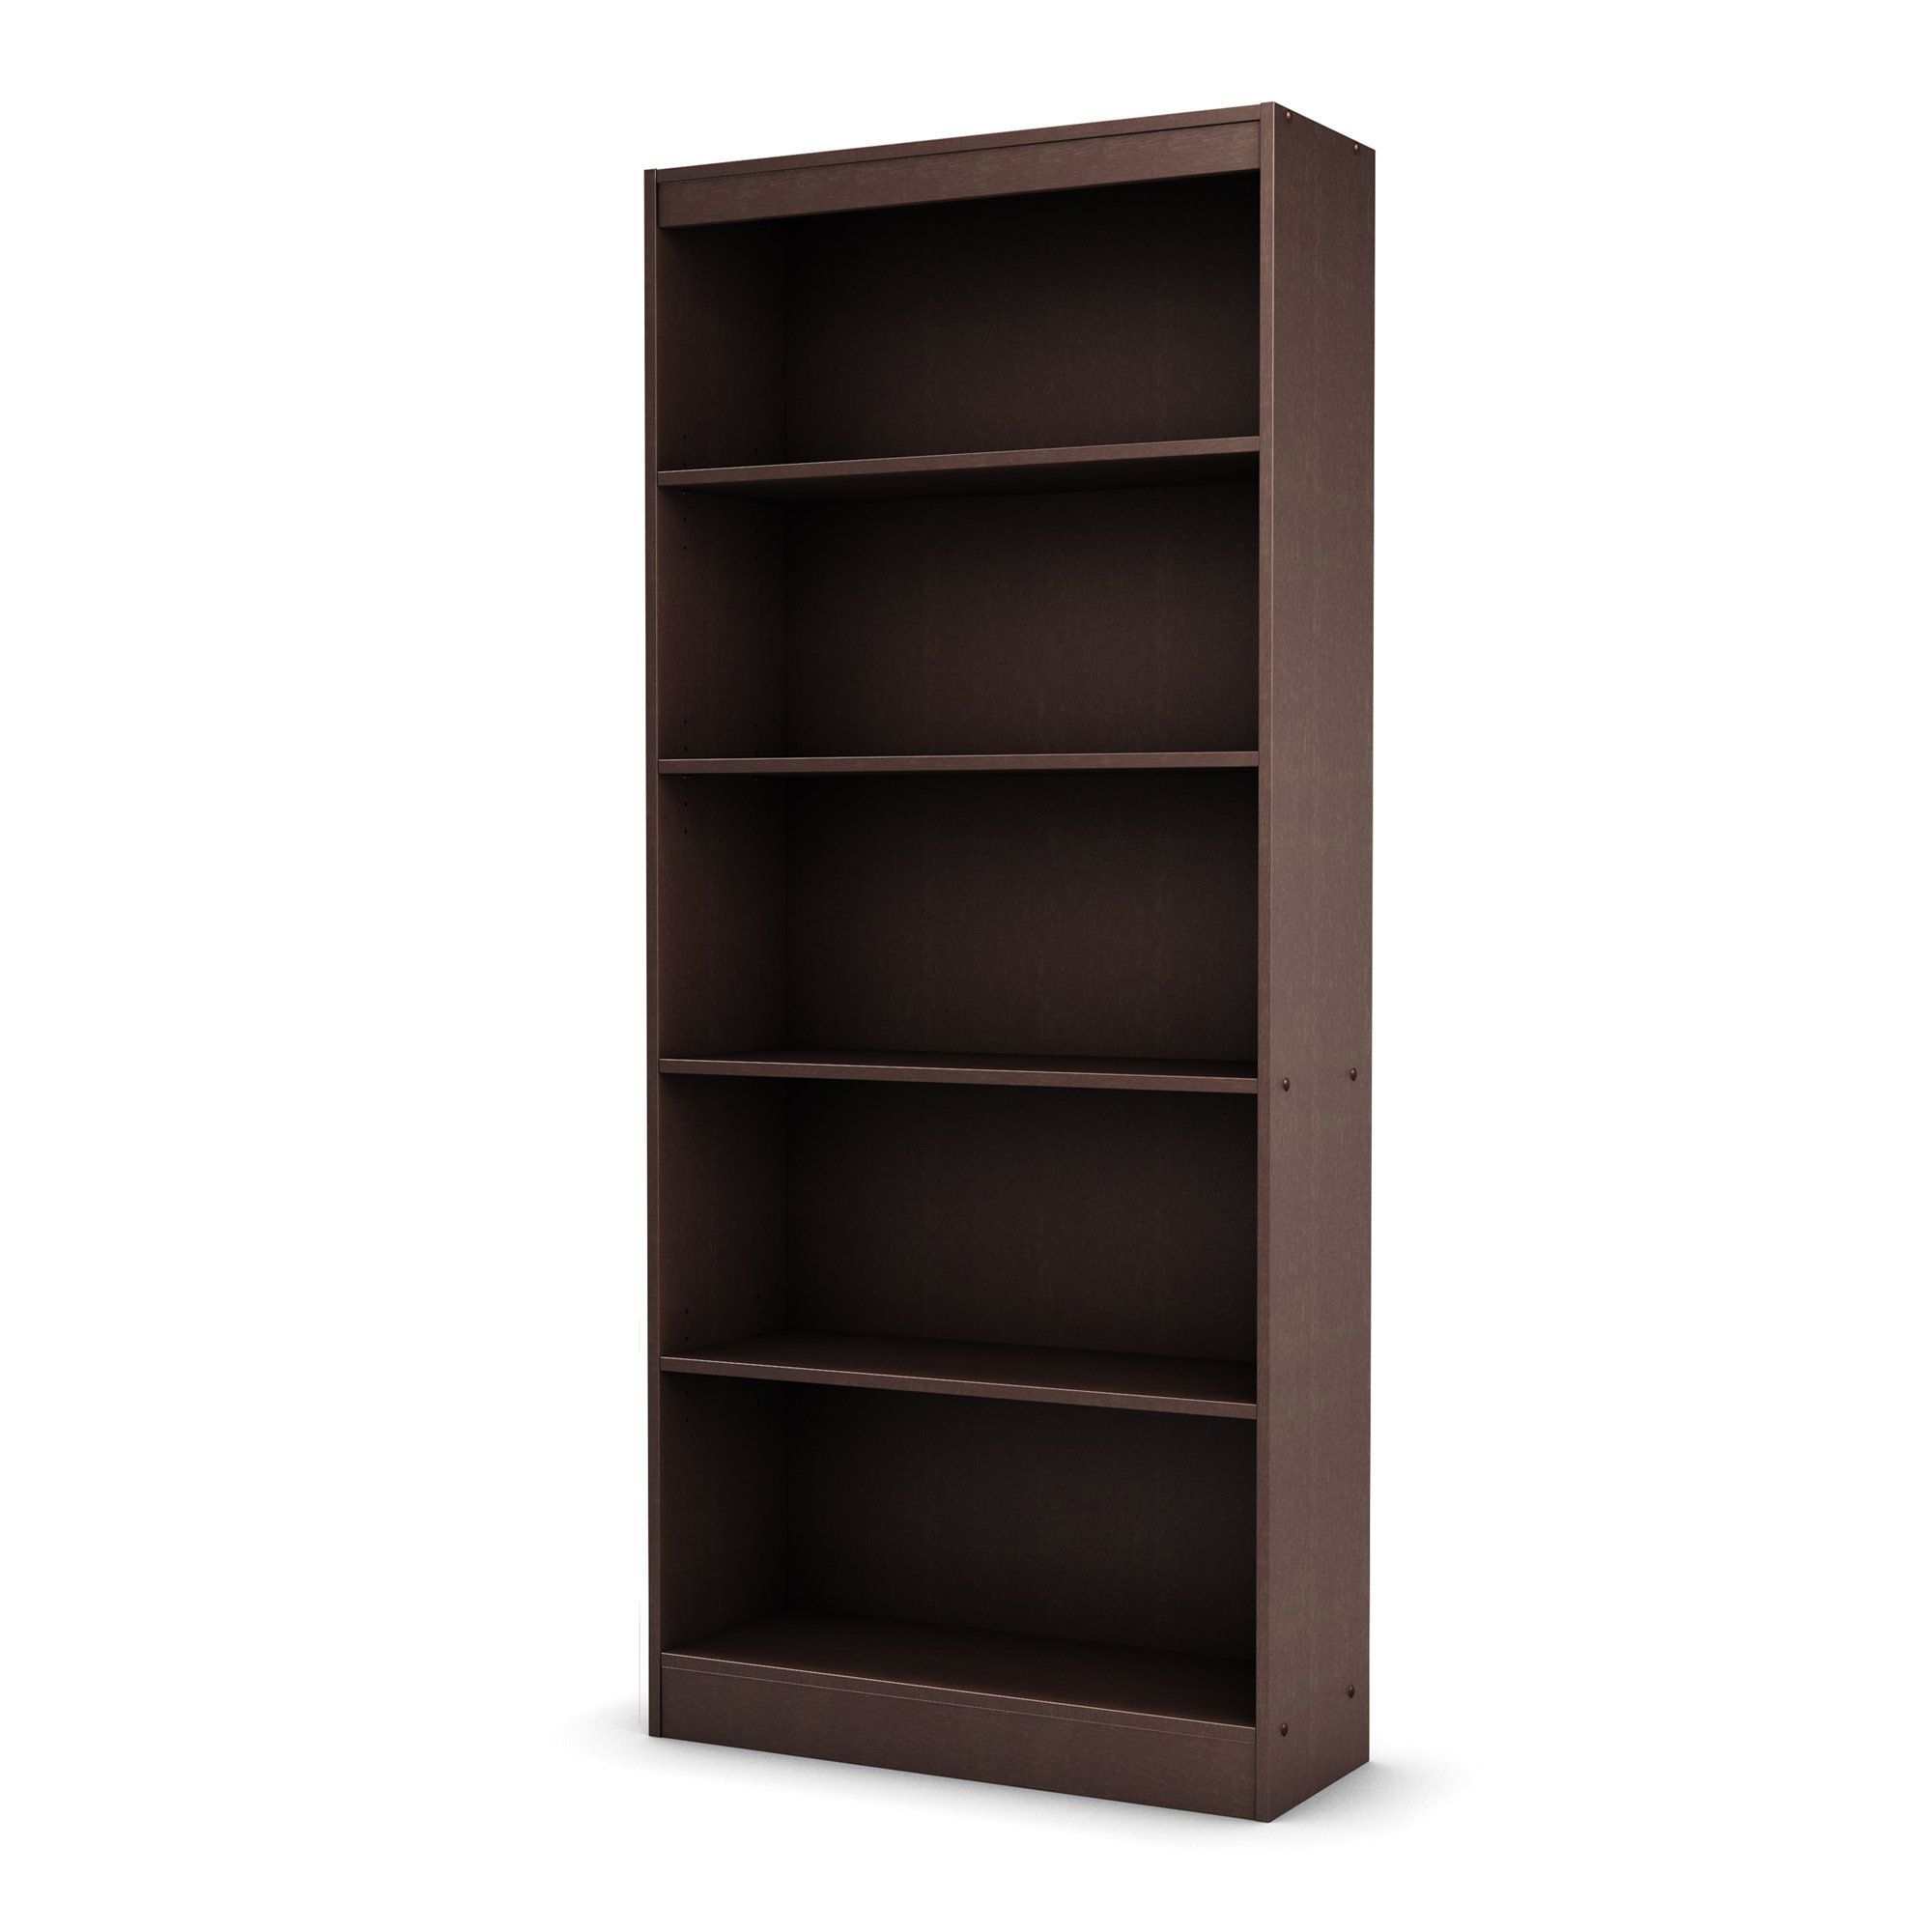 product collection wood overstock axess home bfad shore south bookcase today shelf shipping garden furniture free